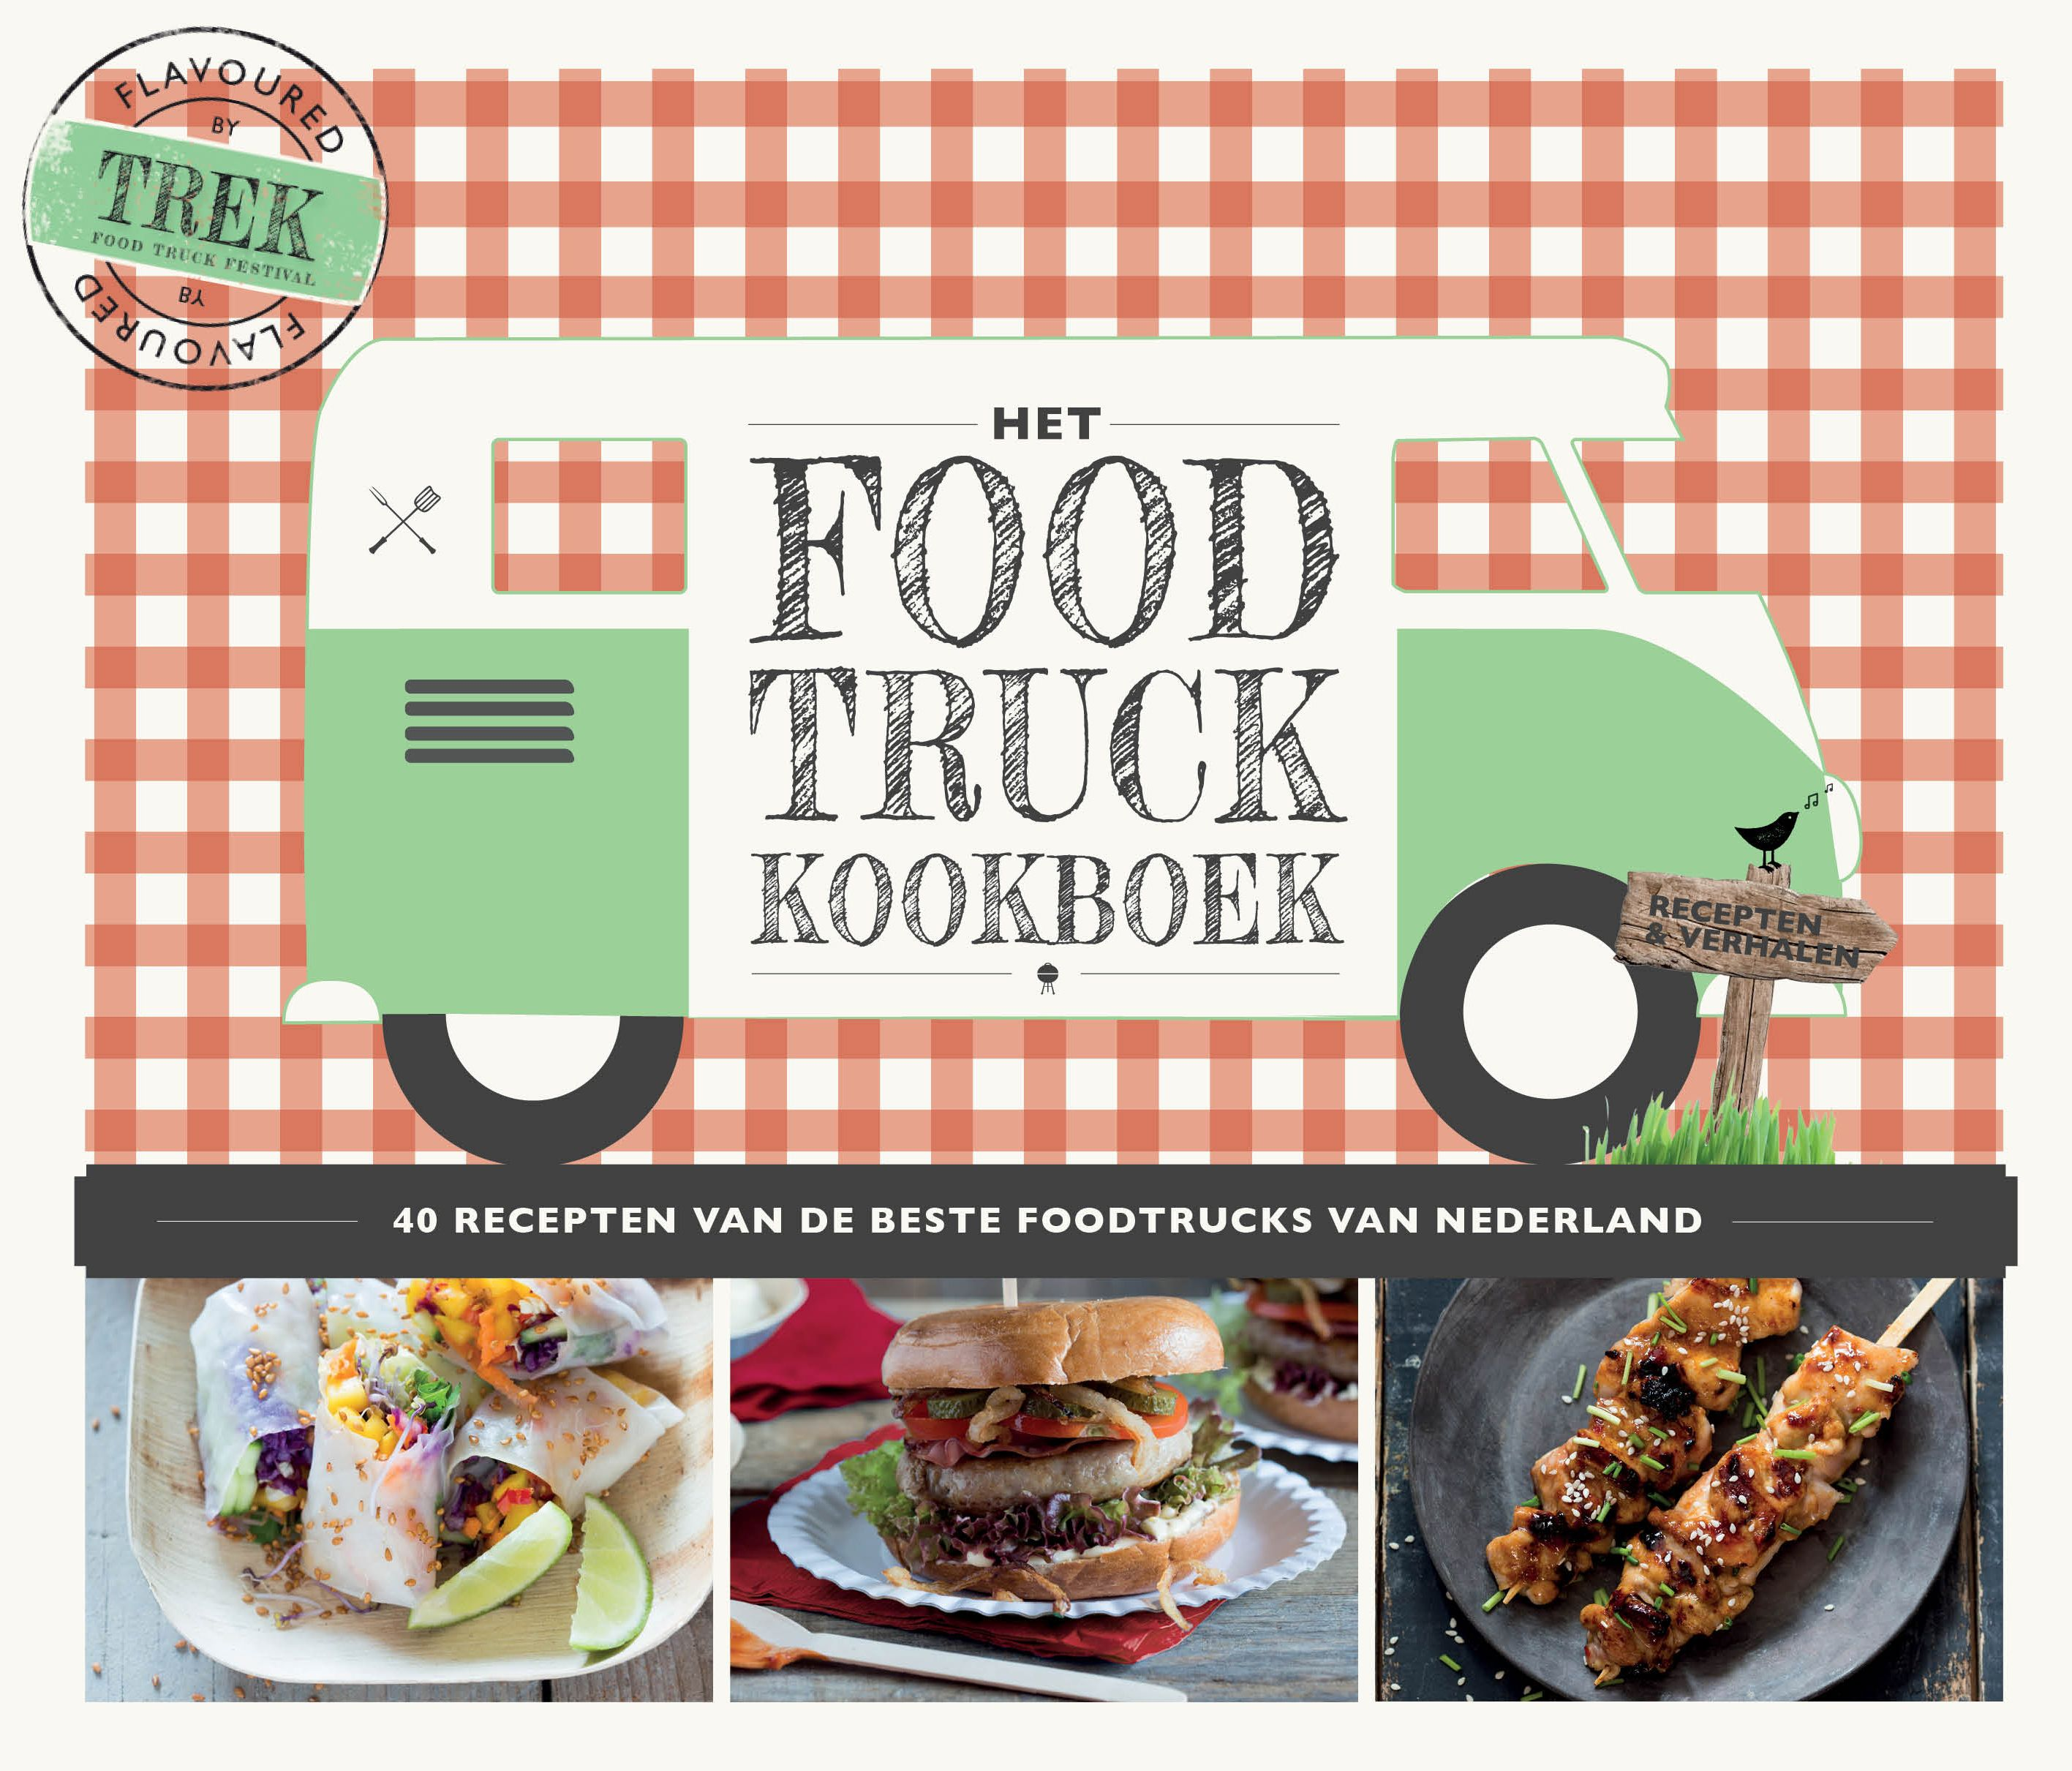 29-03TREK-FoodTruck-cover-voorplat 1e druk DEF